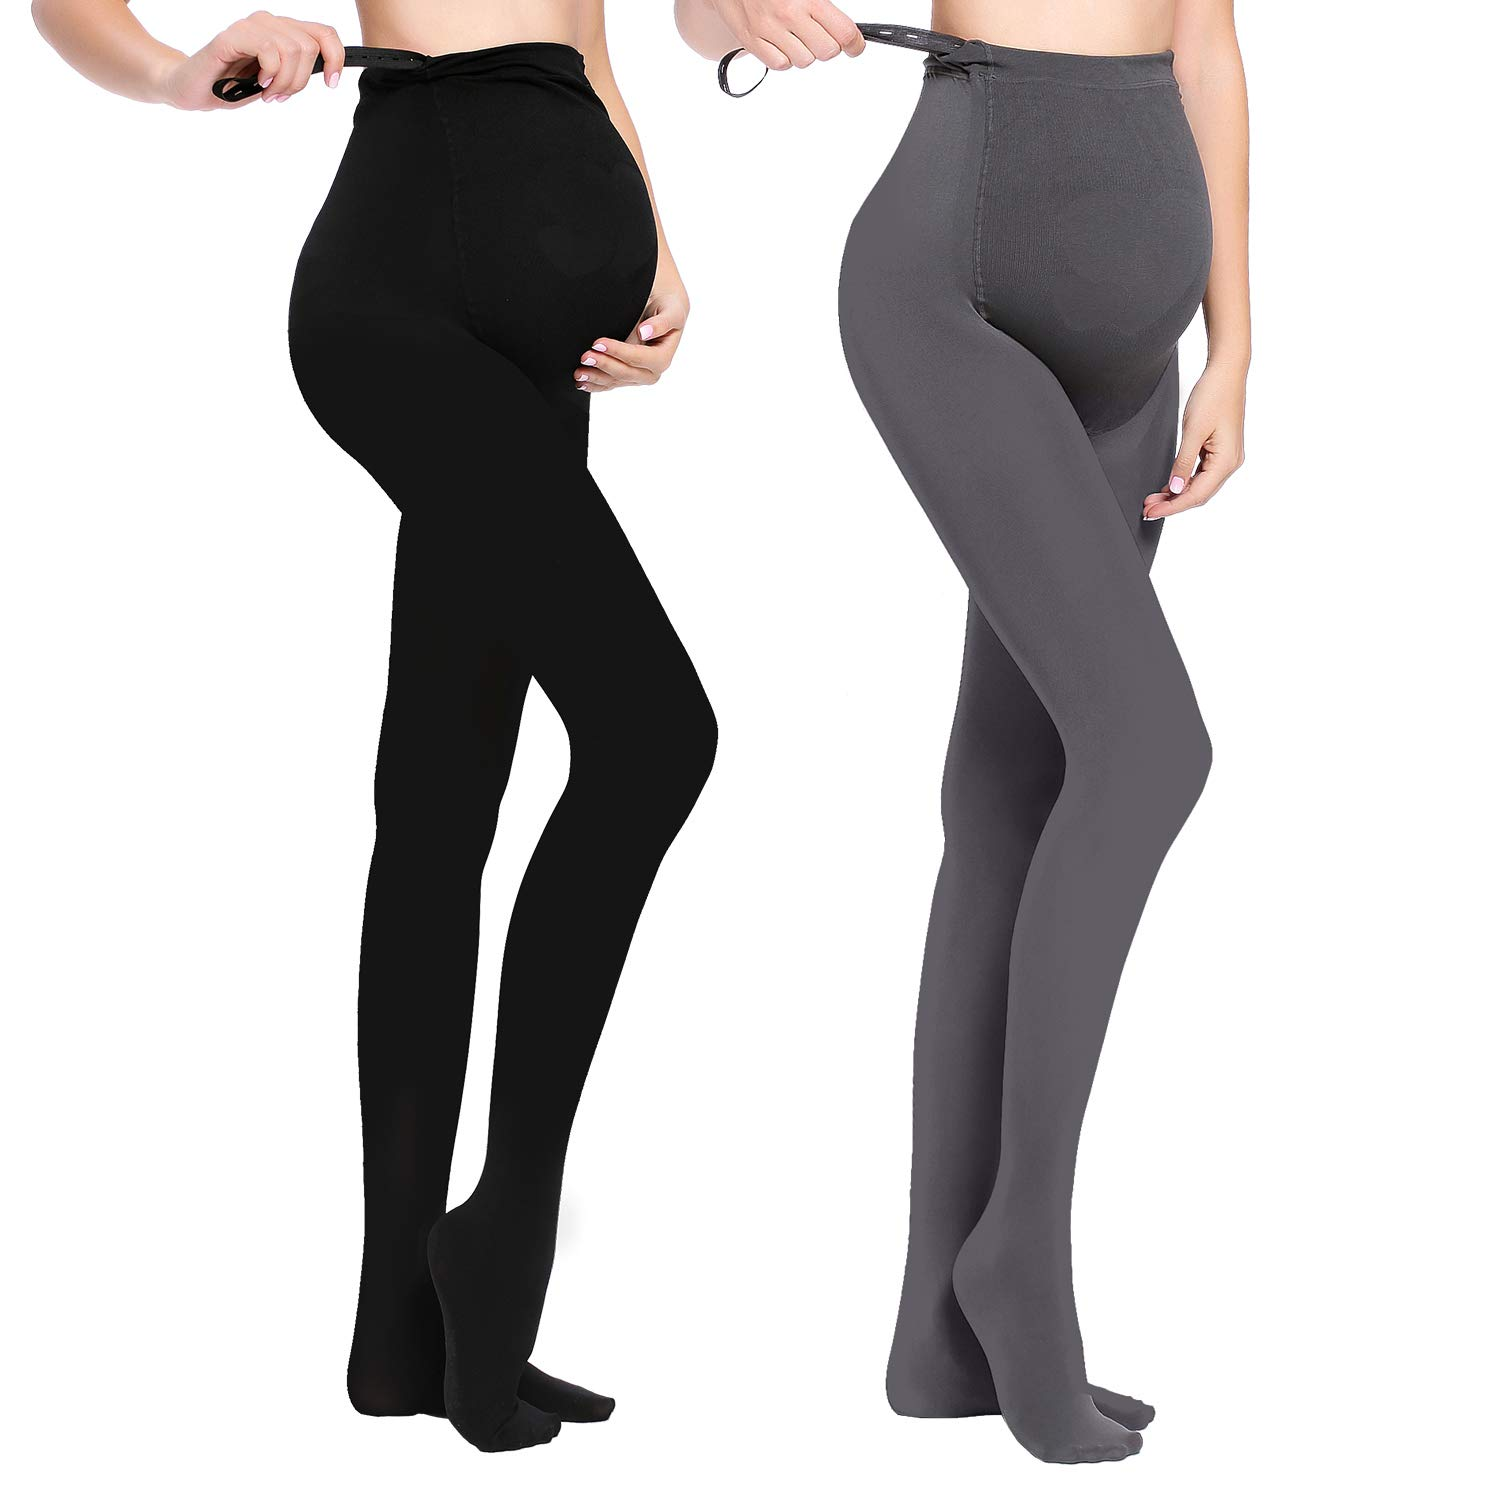 62988d530f8fe JOYNCLEON Maternity Pregnant Women Tights Adjustable Opaque Pantyhose  320DEN One Size Fits All